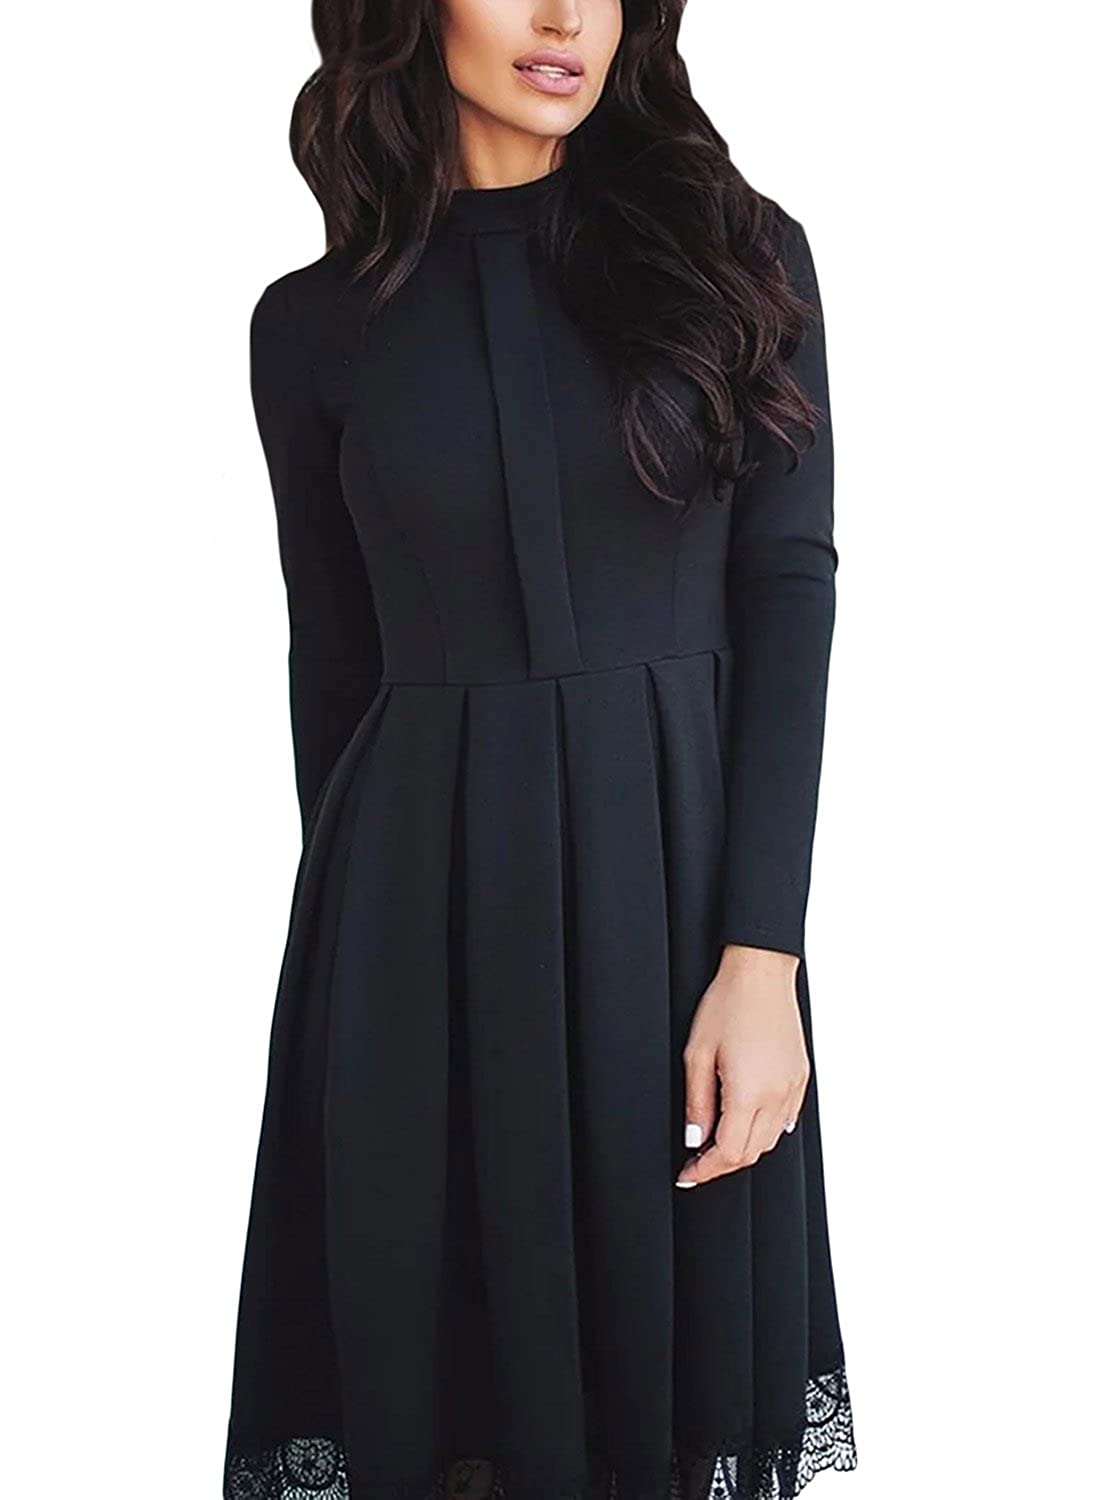 34a0f8f9bbf Top 10 wholesale Skater Cocktail Dress - Chinabrands.com